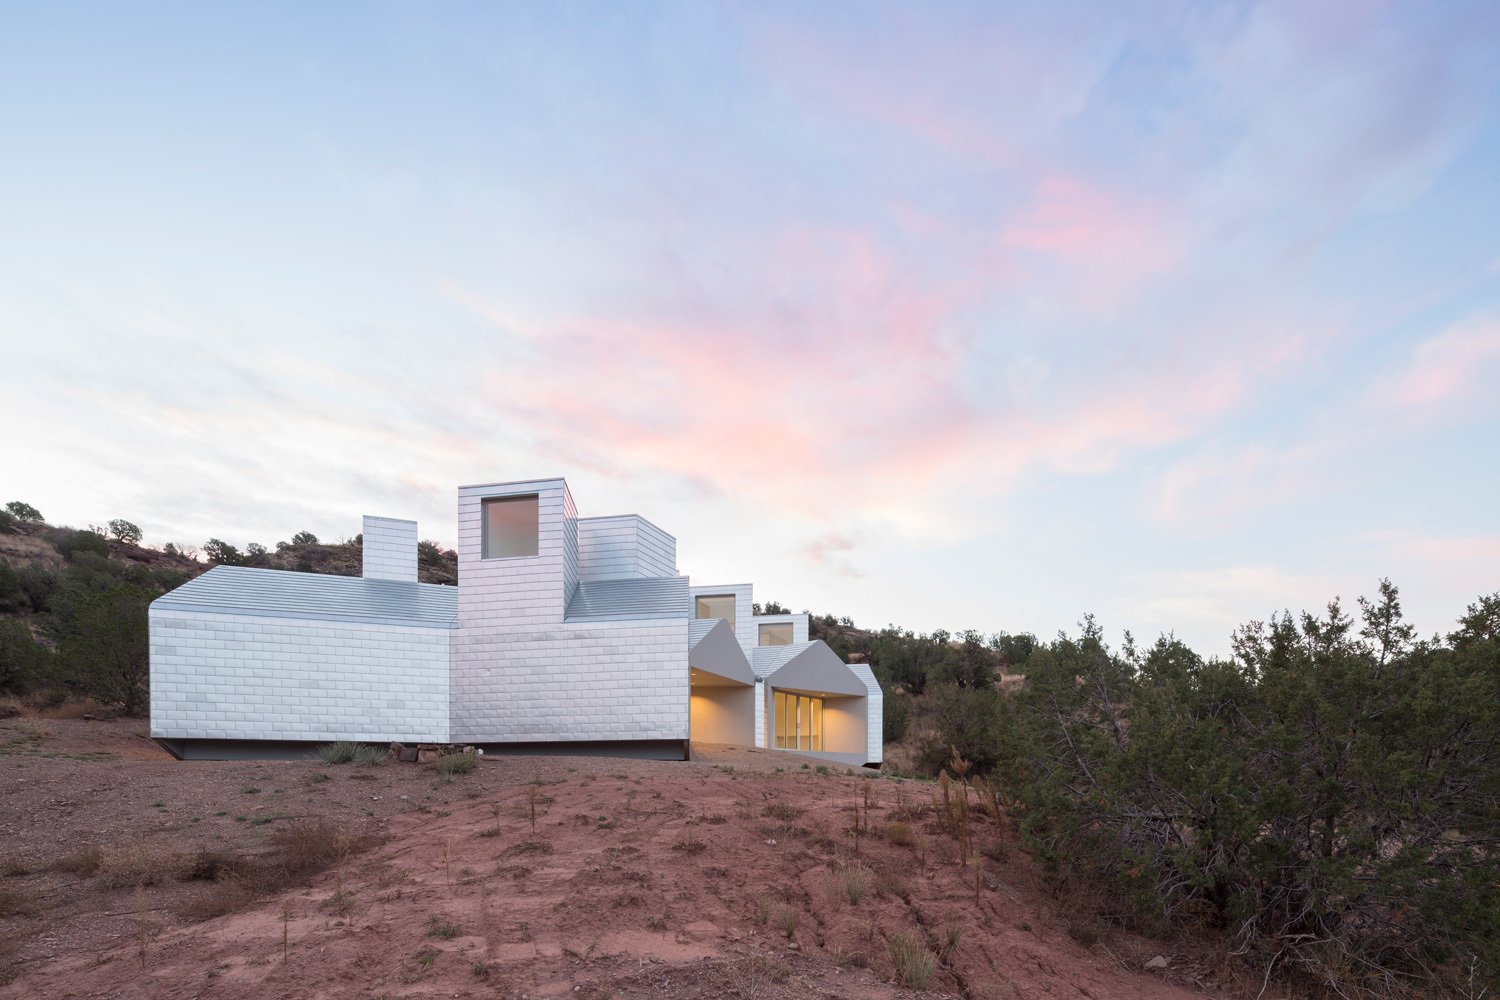 A small airspace separates the building's aluminum skin from the wall underneath. The aluminum acts like a heat sink during the day: it absorbs heat but remains thermally separated (by the narrow gap) from the Element House walls.  16+ Prefab Homes in the Middle of Nowhere by Luke Hopping from Prefab Units Cluster Together in this Off-the-Grid Guesthouse